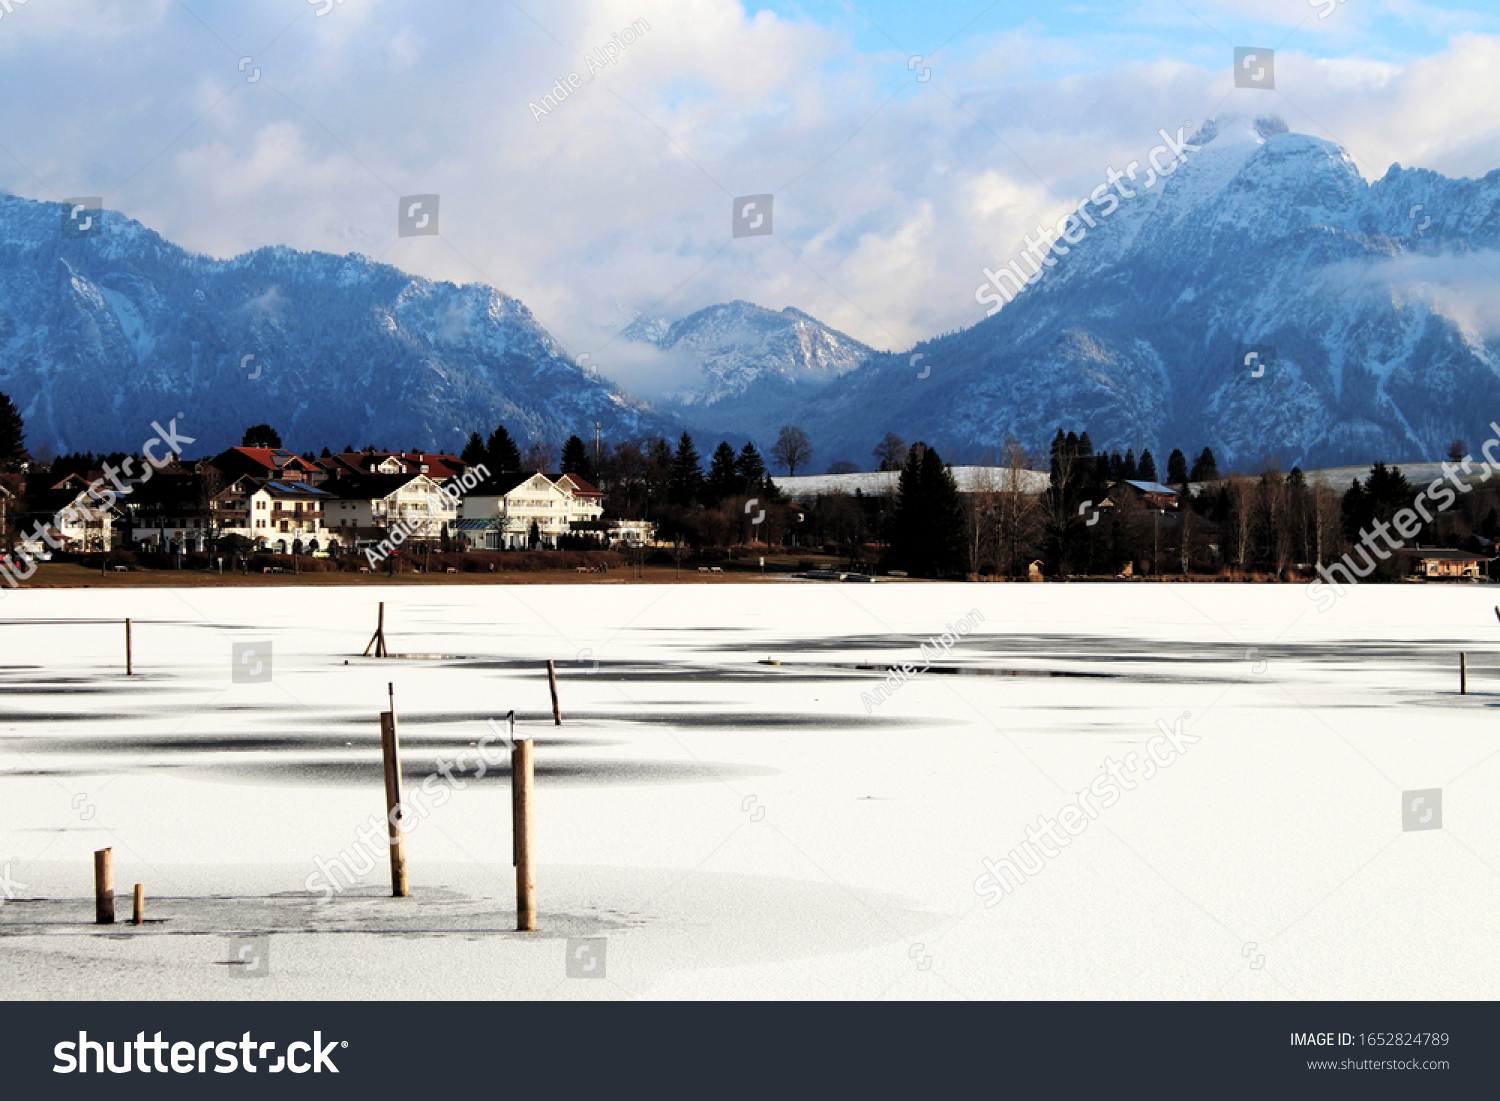 View over a frozen lake in Winter, buildings on the left side, impressive sky, blue mountains in the background, Allgäu, Bavaria